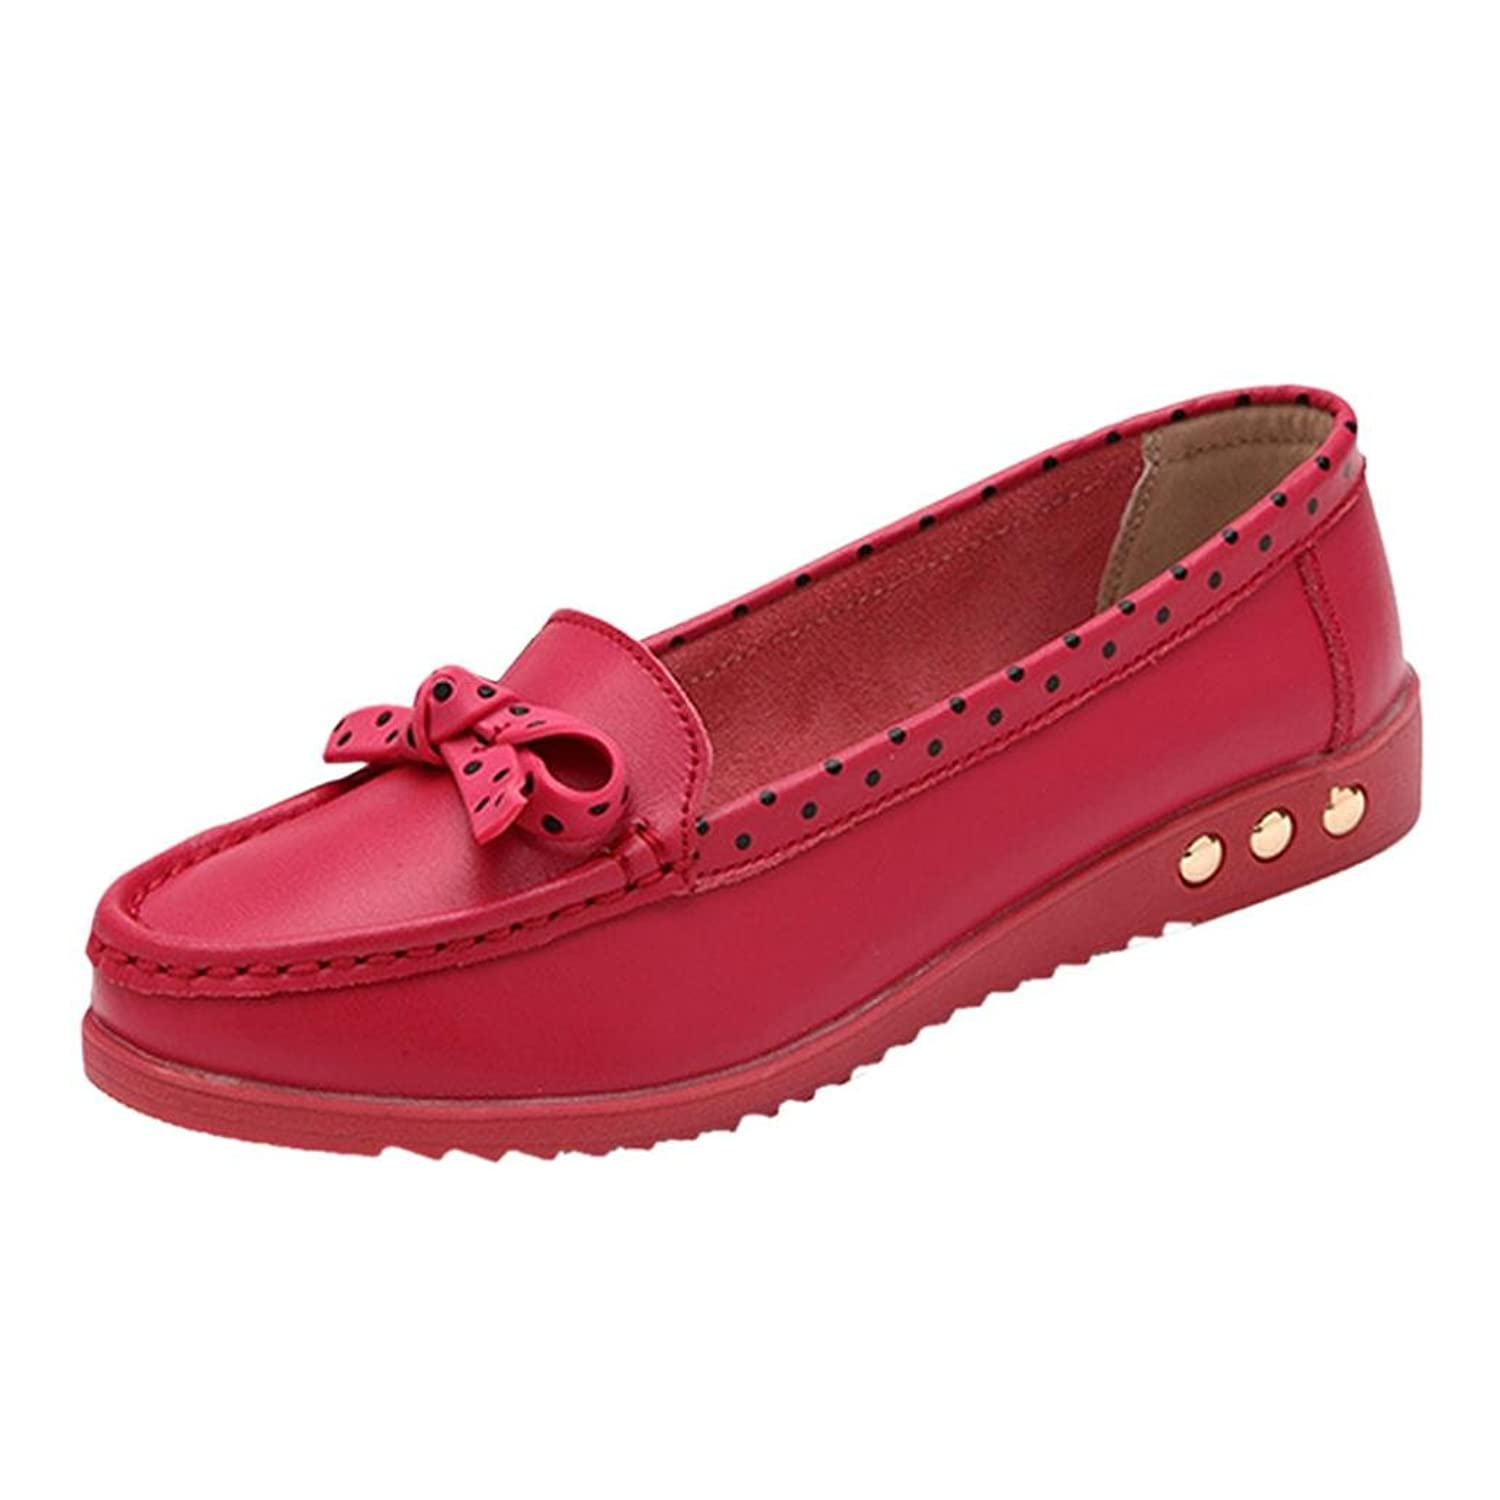 Datework Women Bowknot Slip On Comfort Flat Loafers Shoes